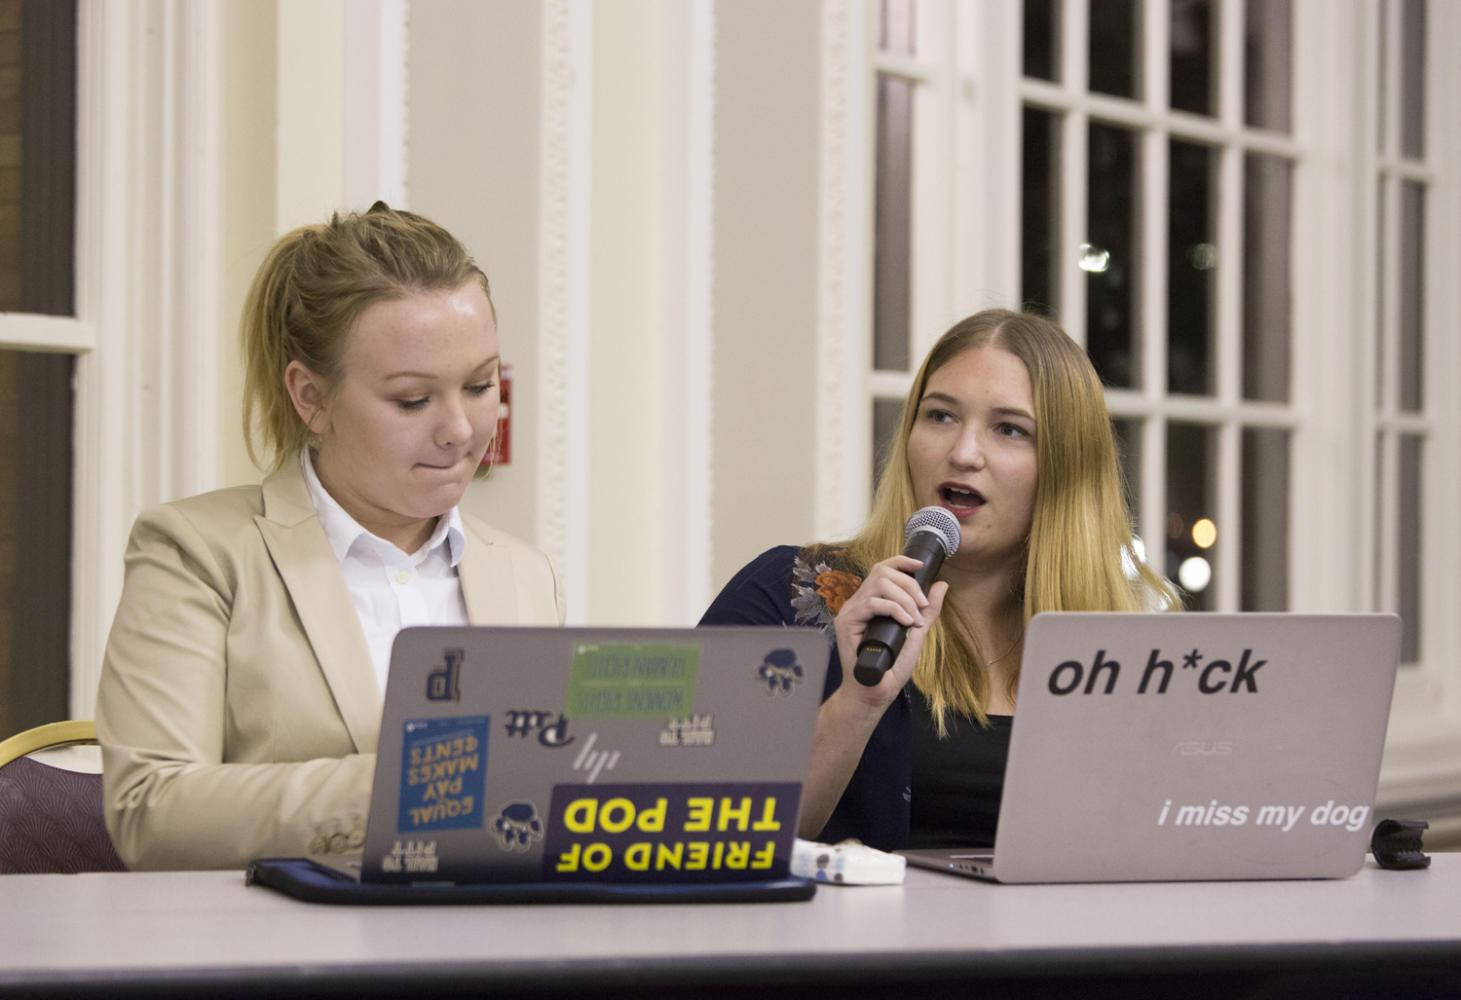 Pitt democrats Grace Dubois (left) and Char Goldbach (right) discuss their vision about healthcare in the U.S. at the Pitt Healthcare Debate on Monday night. (Photo by Thomas Yang | Visual Editor)